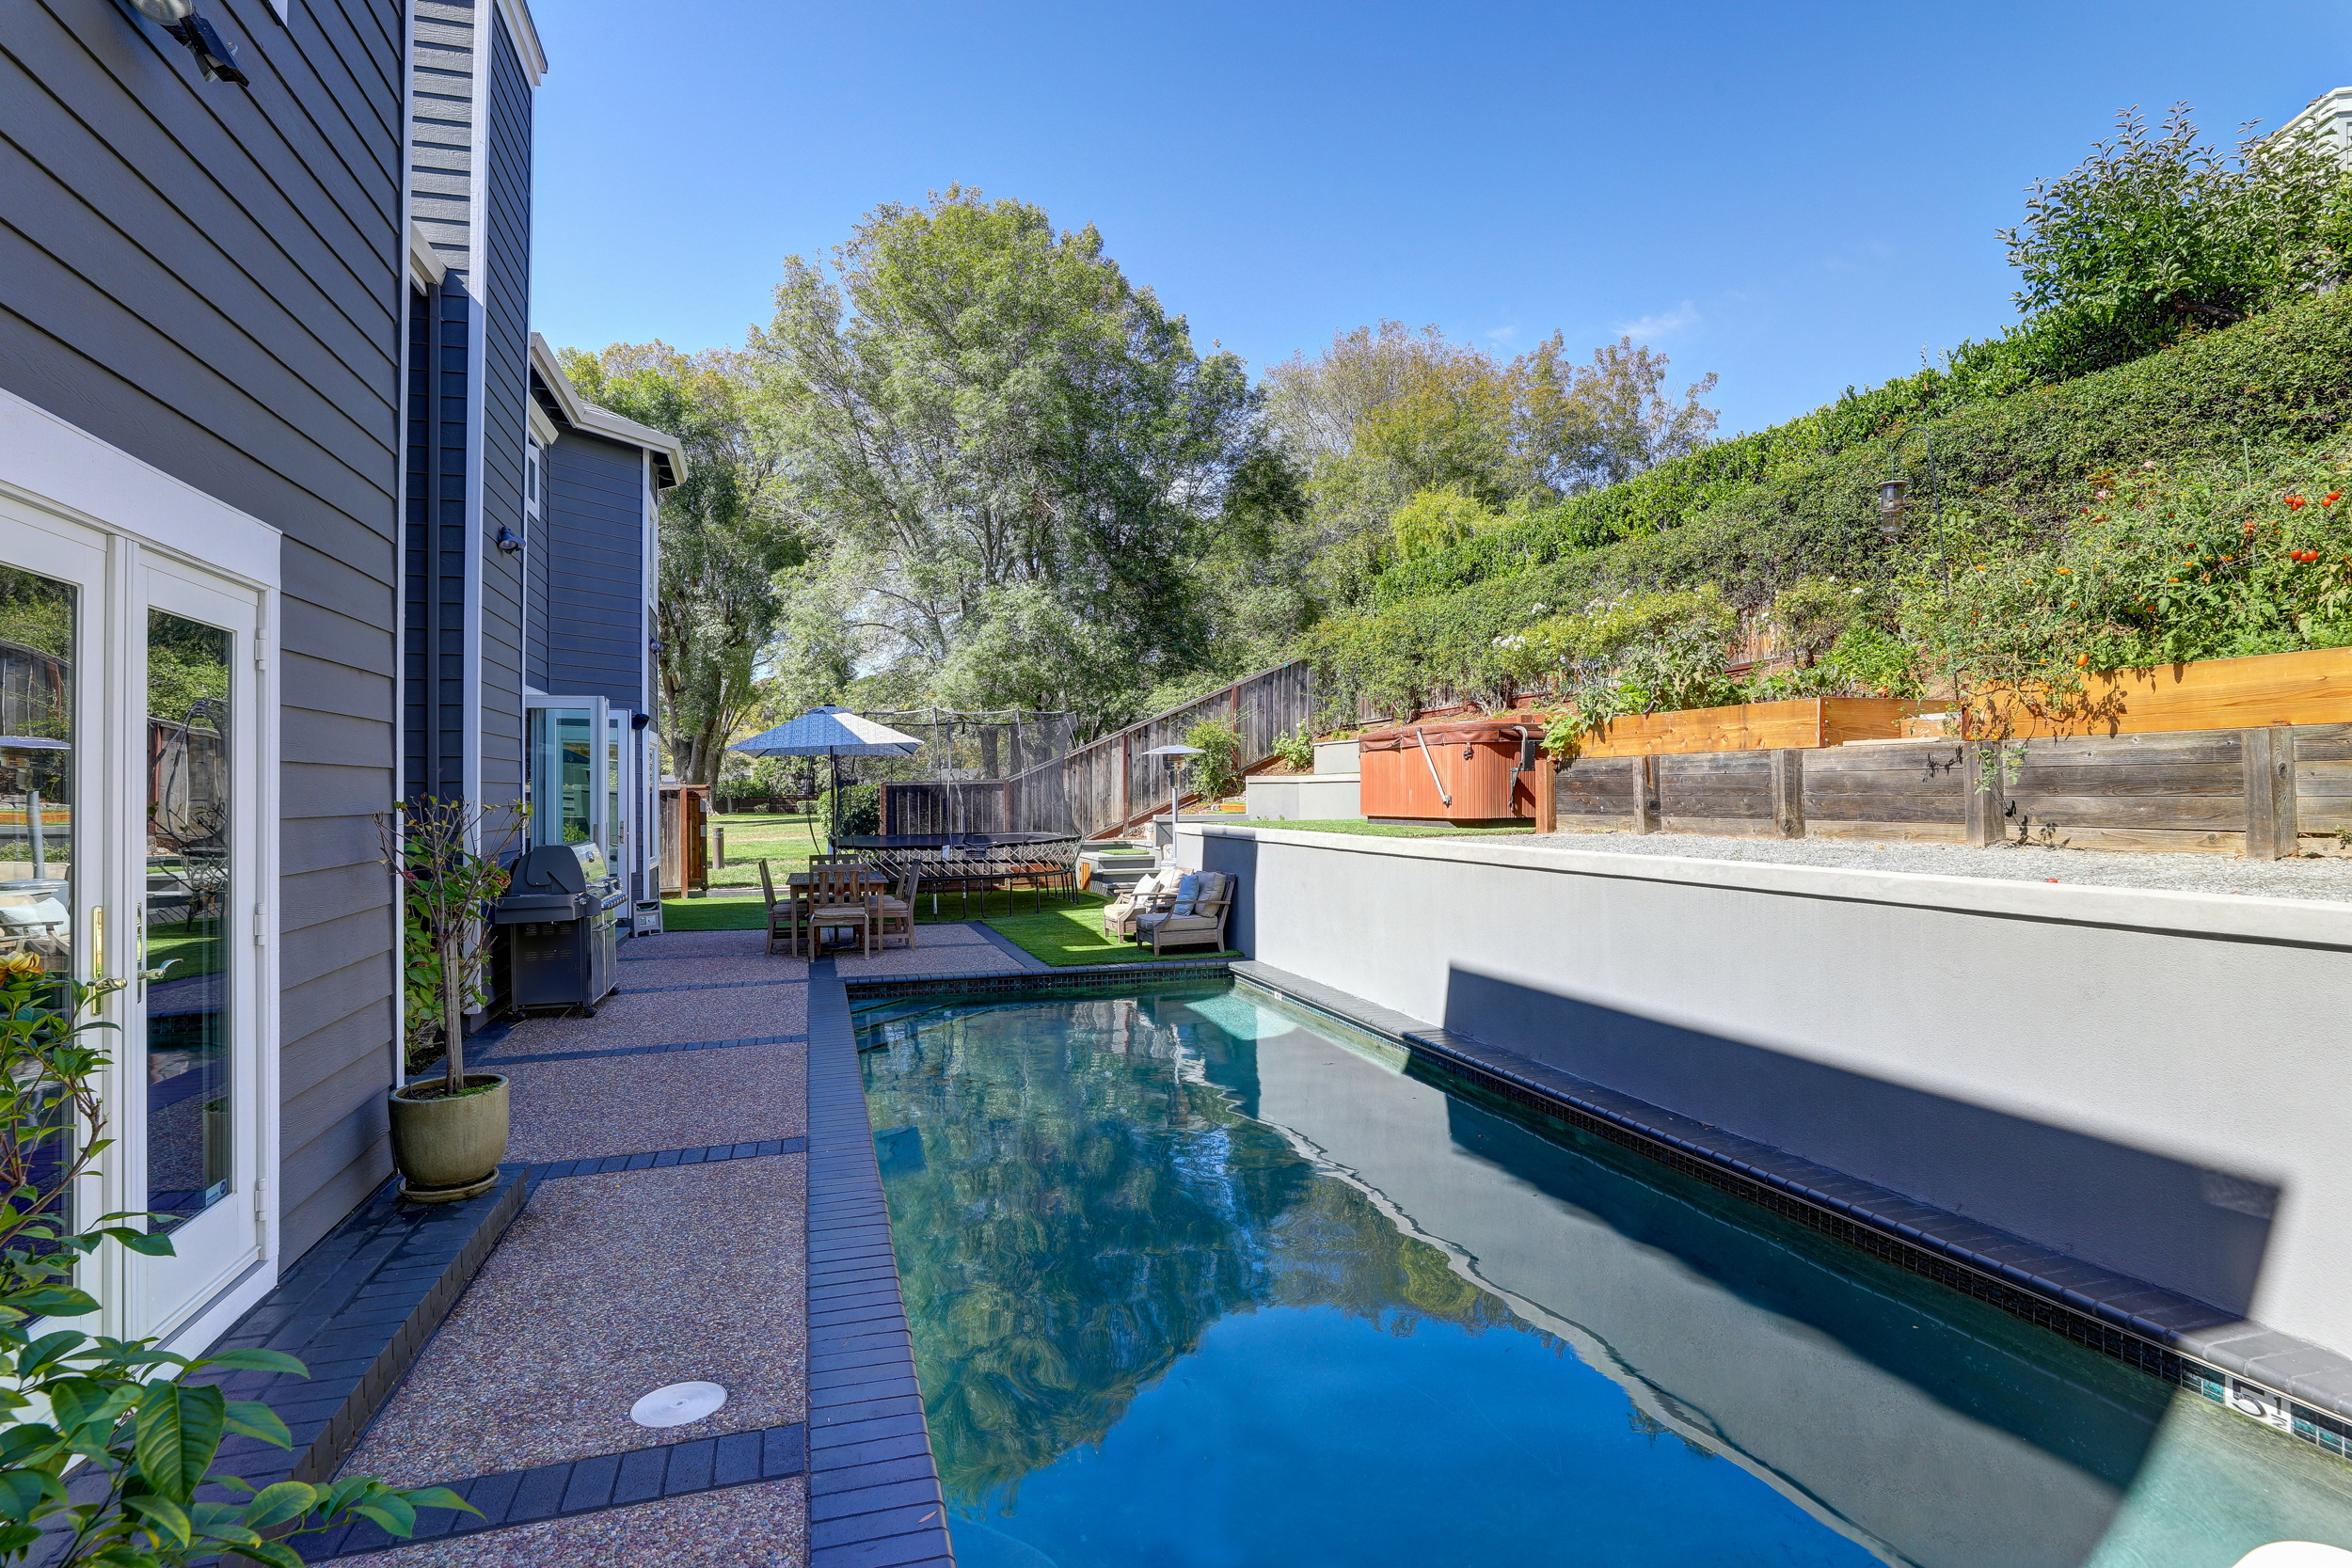 8Parkside 58 - Own Marin with Compass - Marin County Best Realtor.jpg